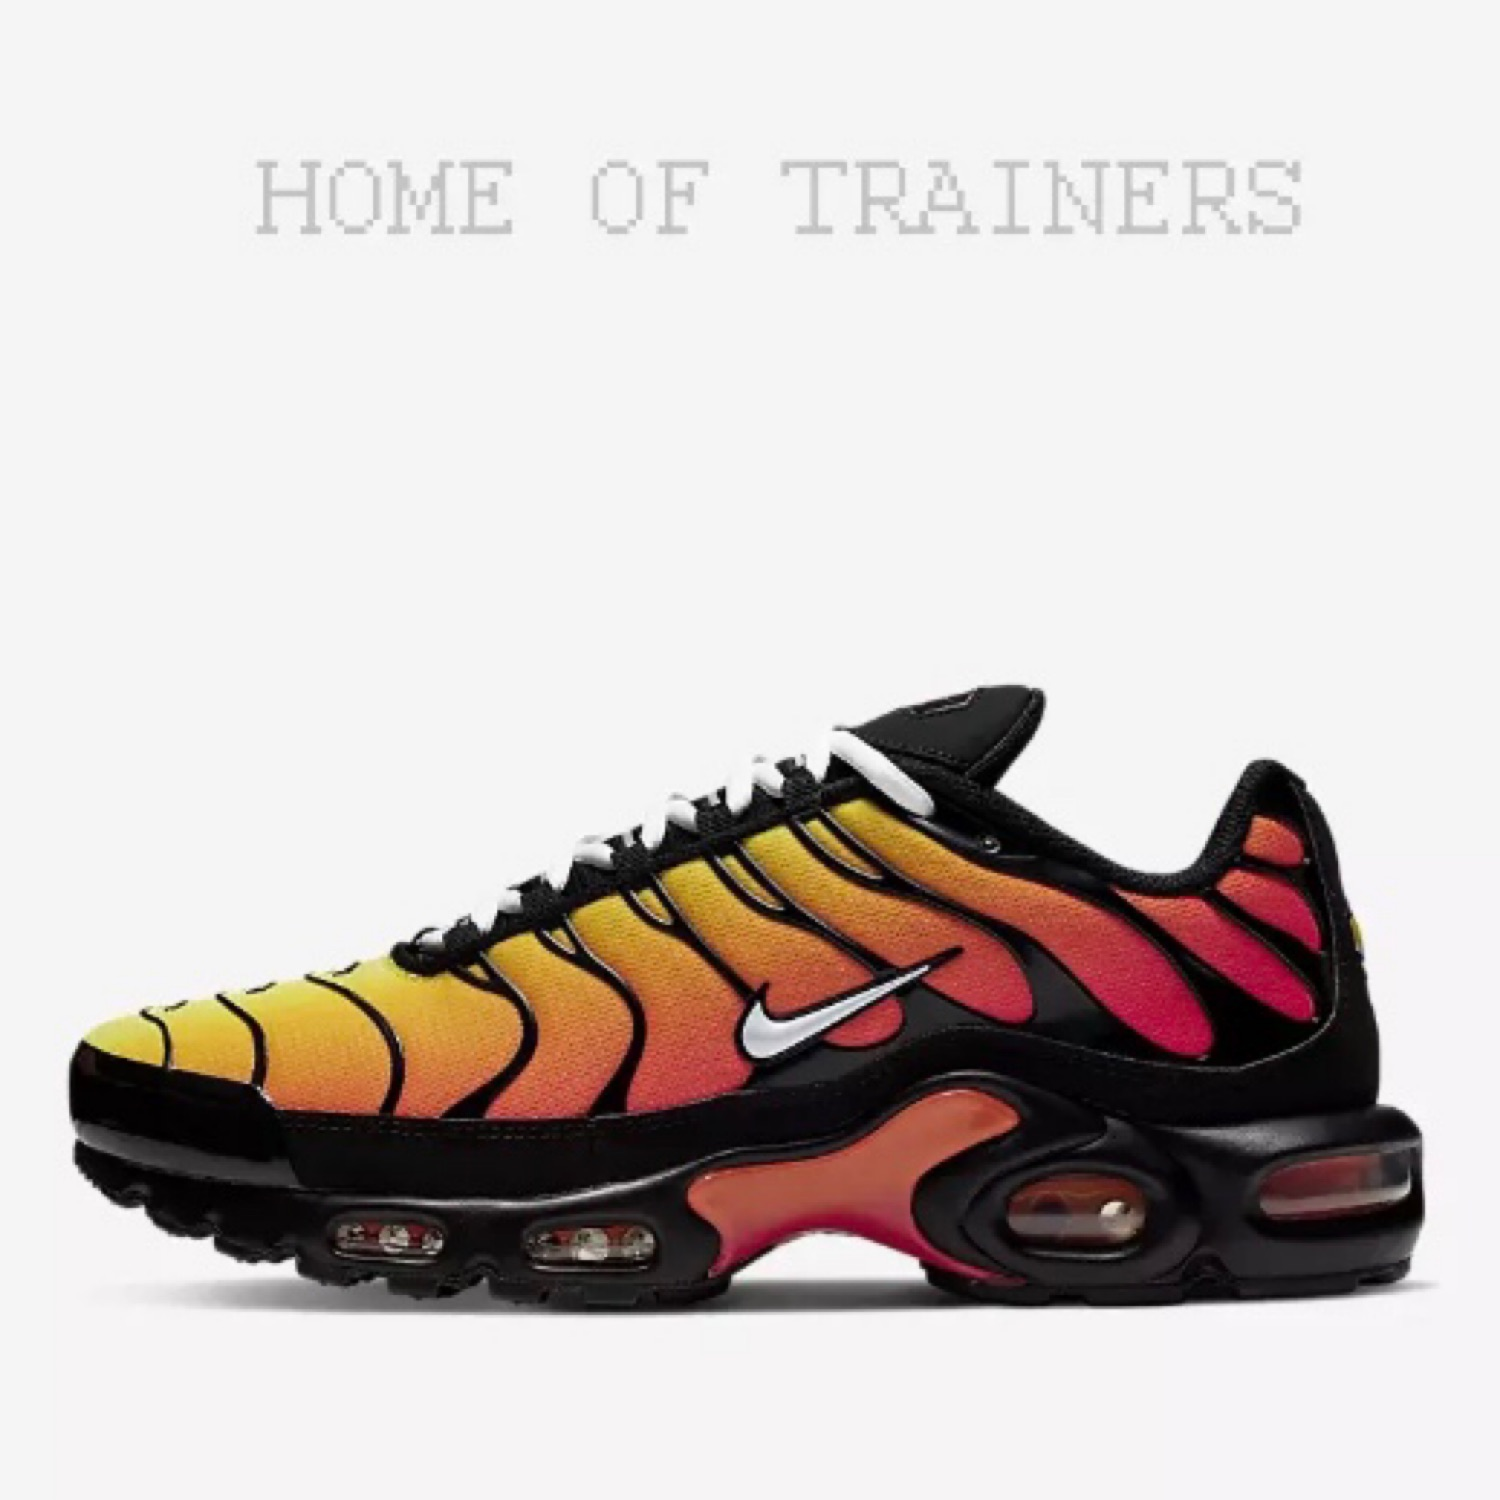 Available Now The Air Max Plus Arrives in an